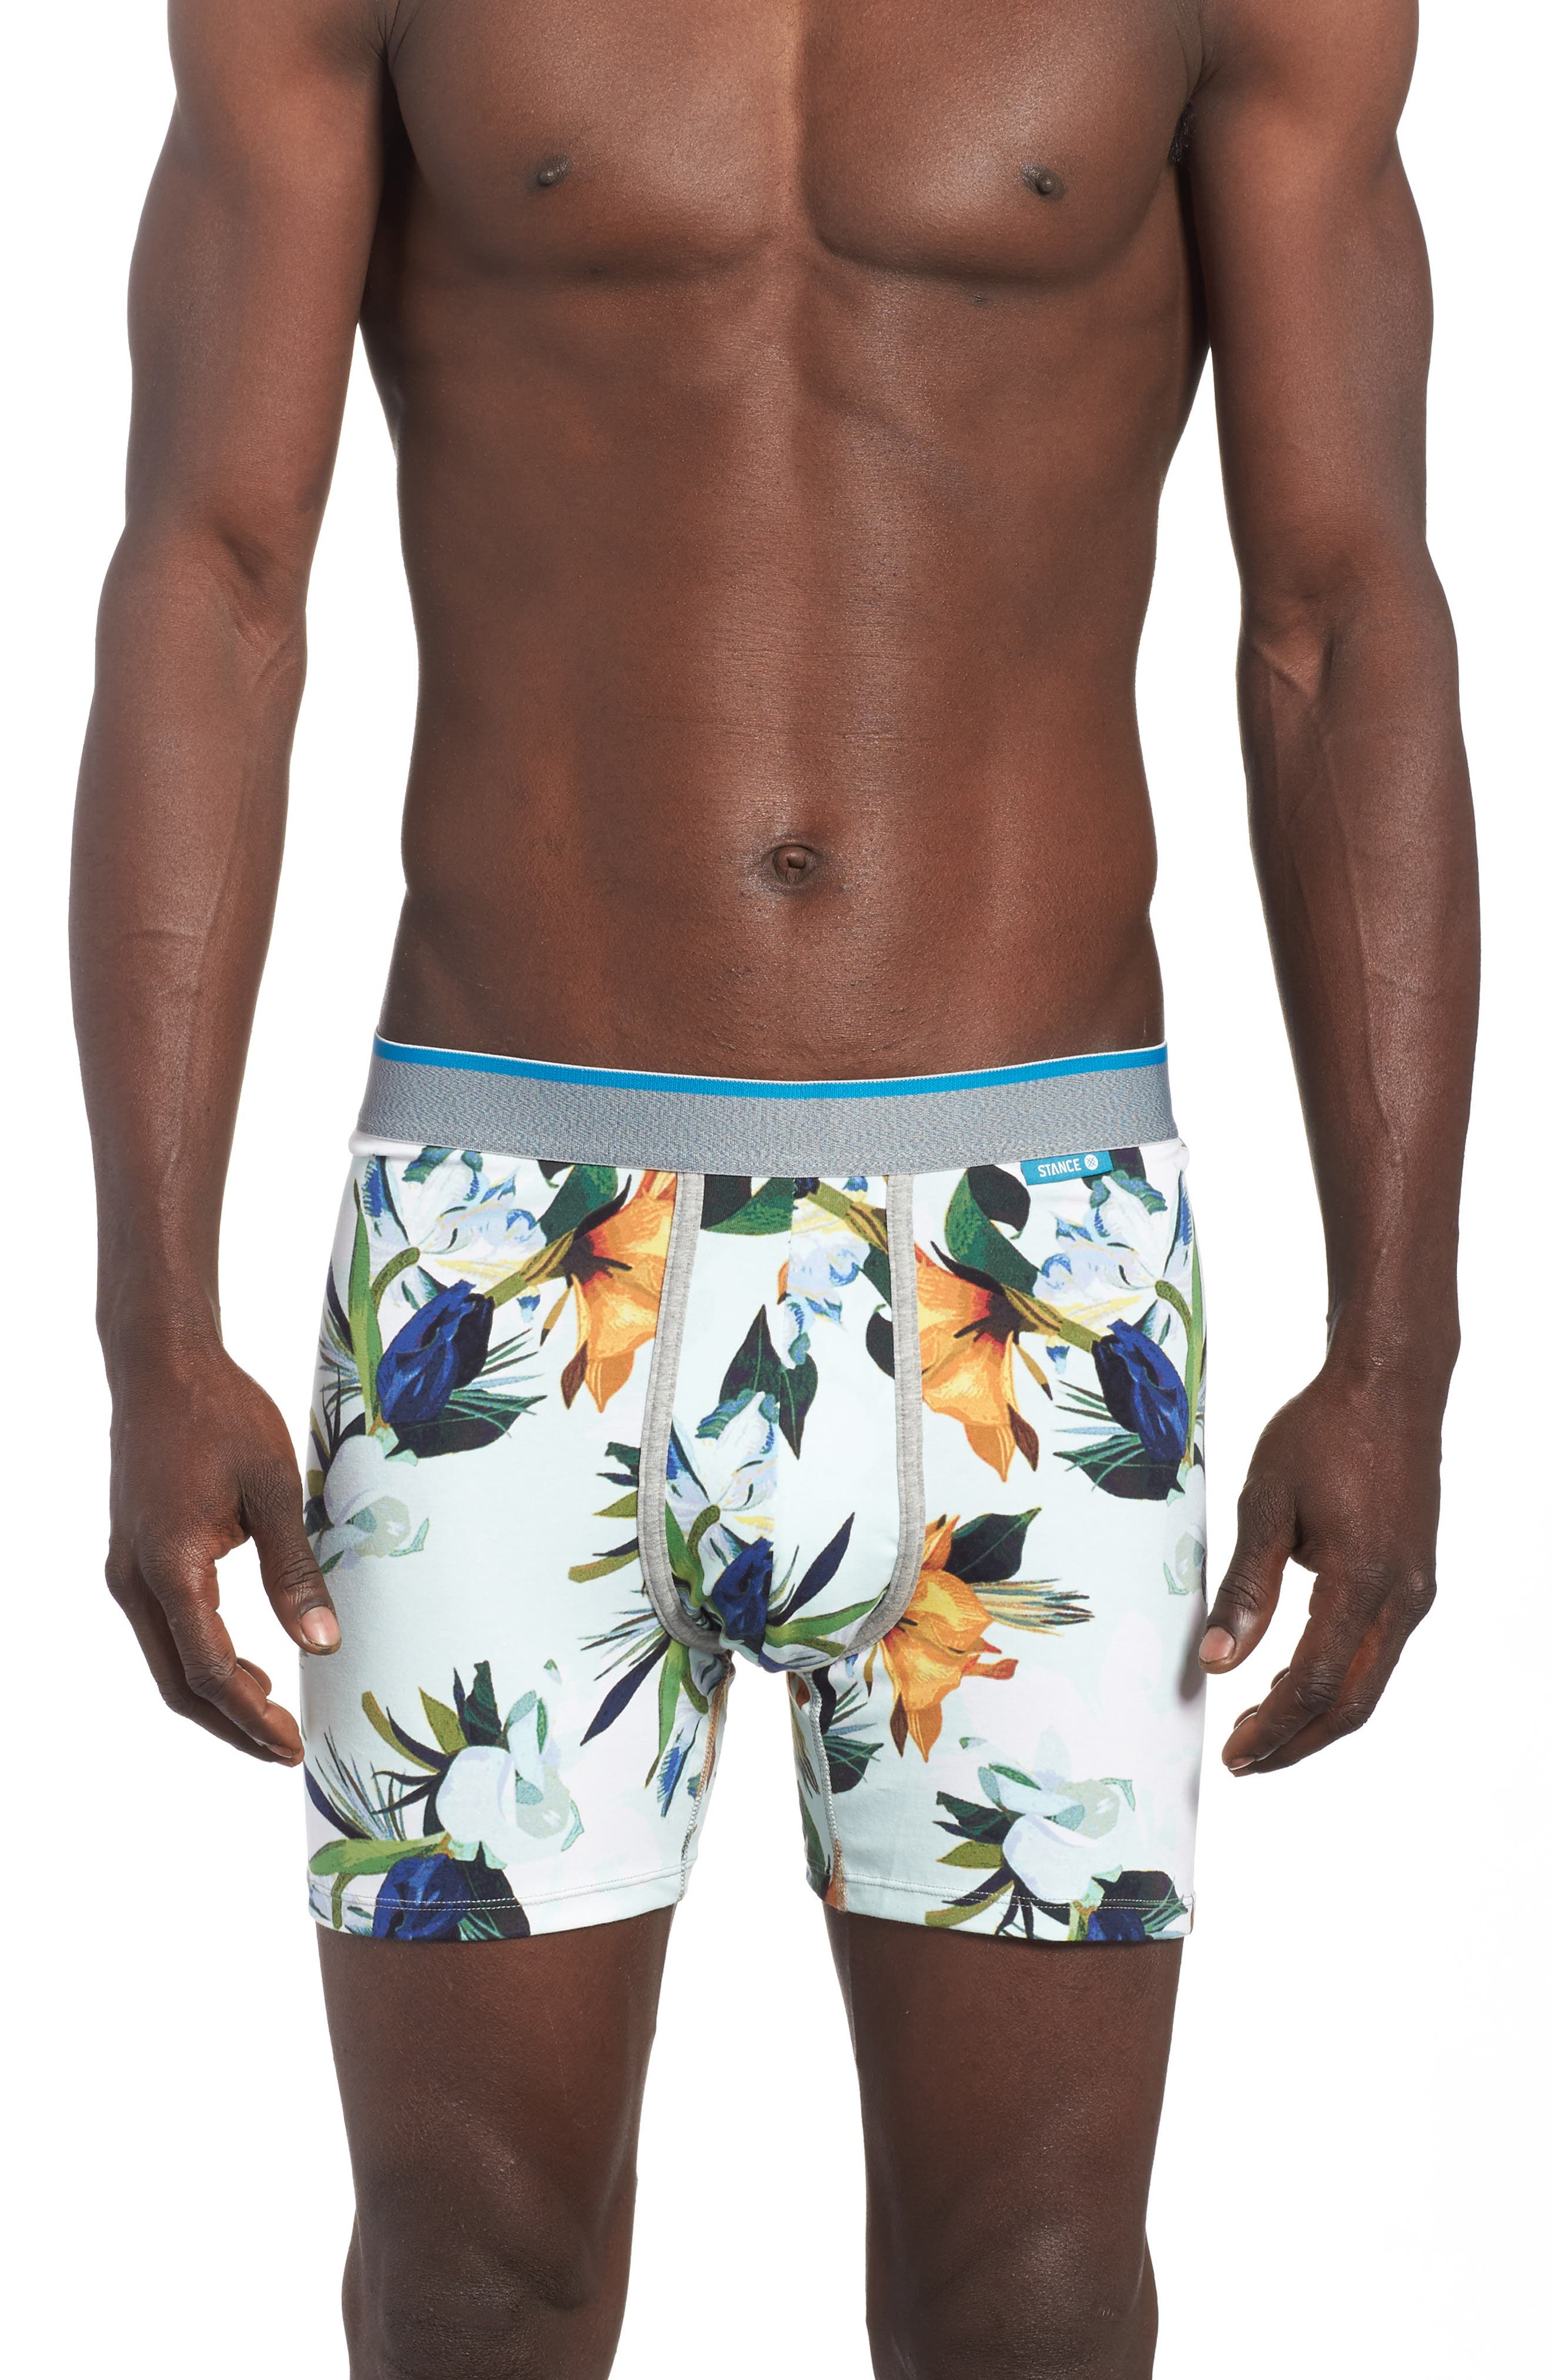 Aqua Floral Boxer Briefs,                             Main thumbnail 1, color,                             Medium Blue